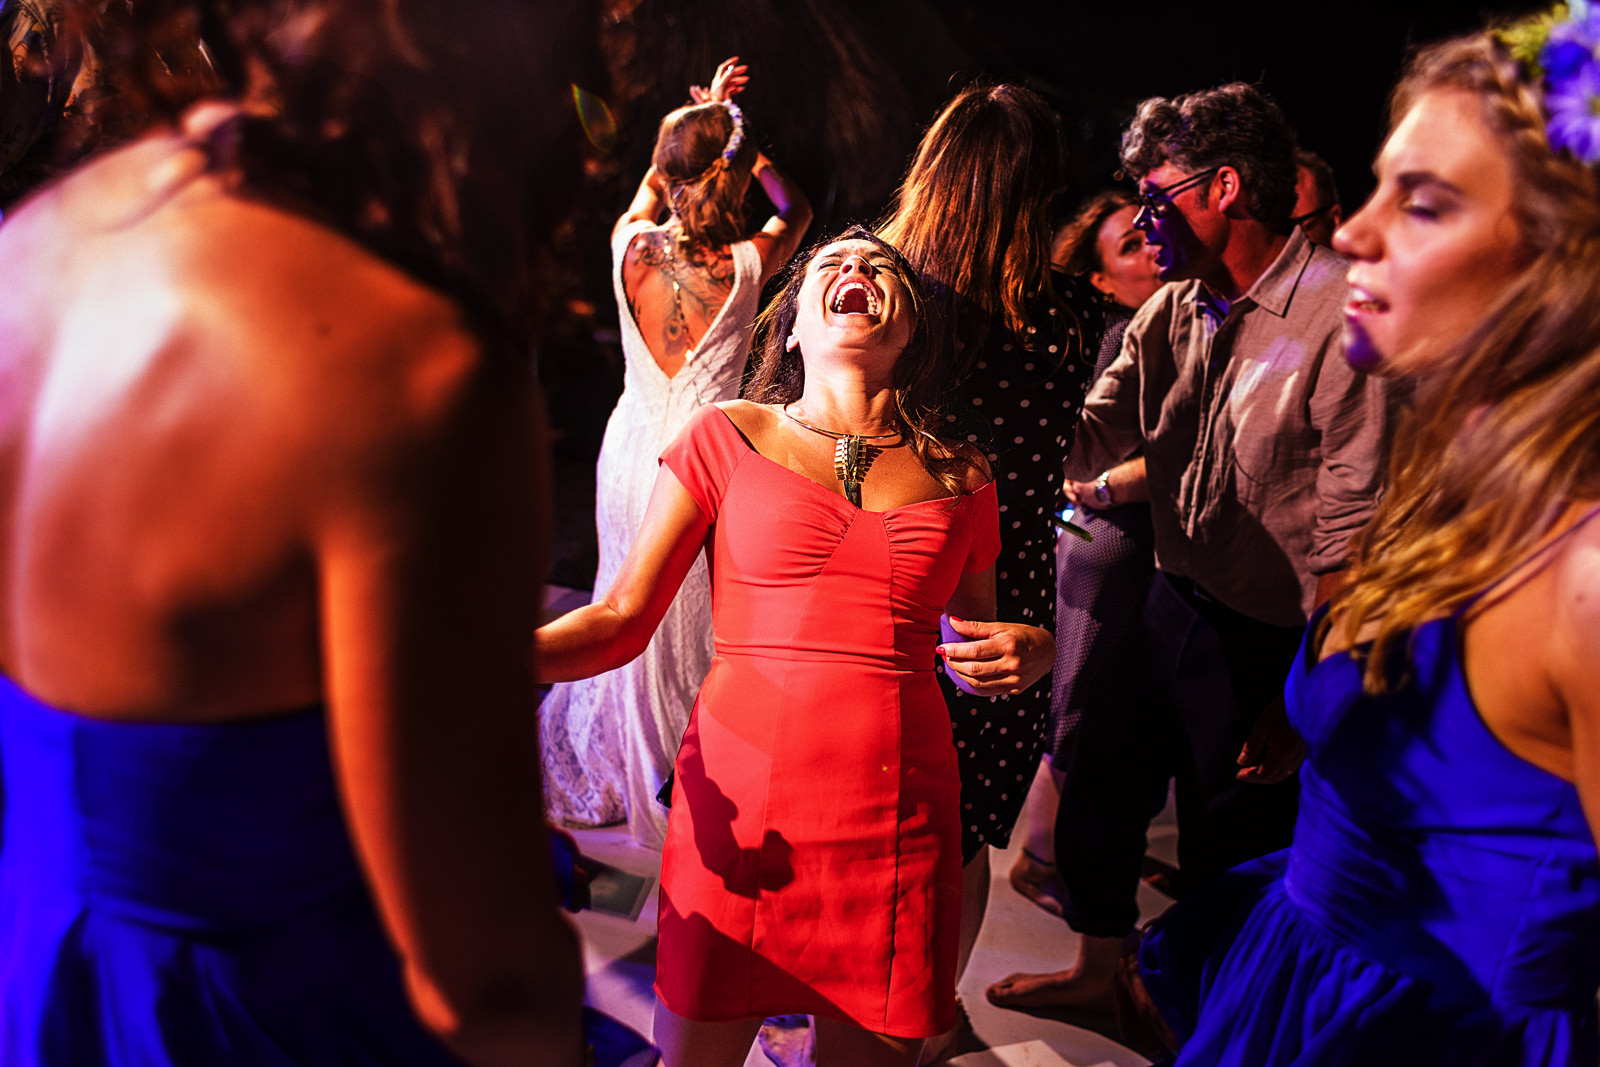 Wedding guest laughing while dancing